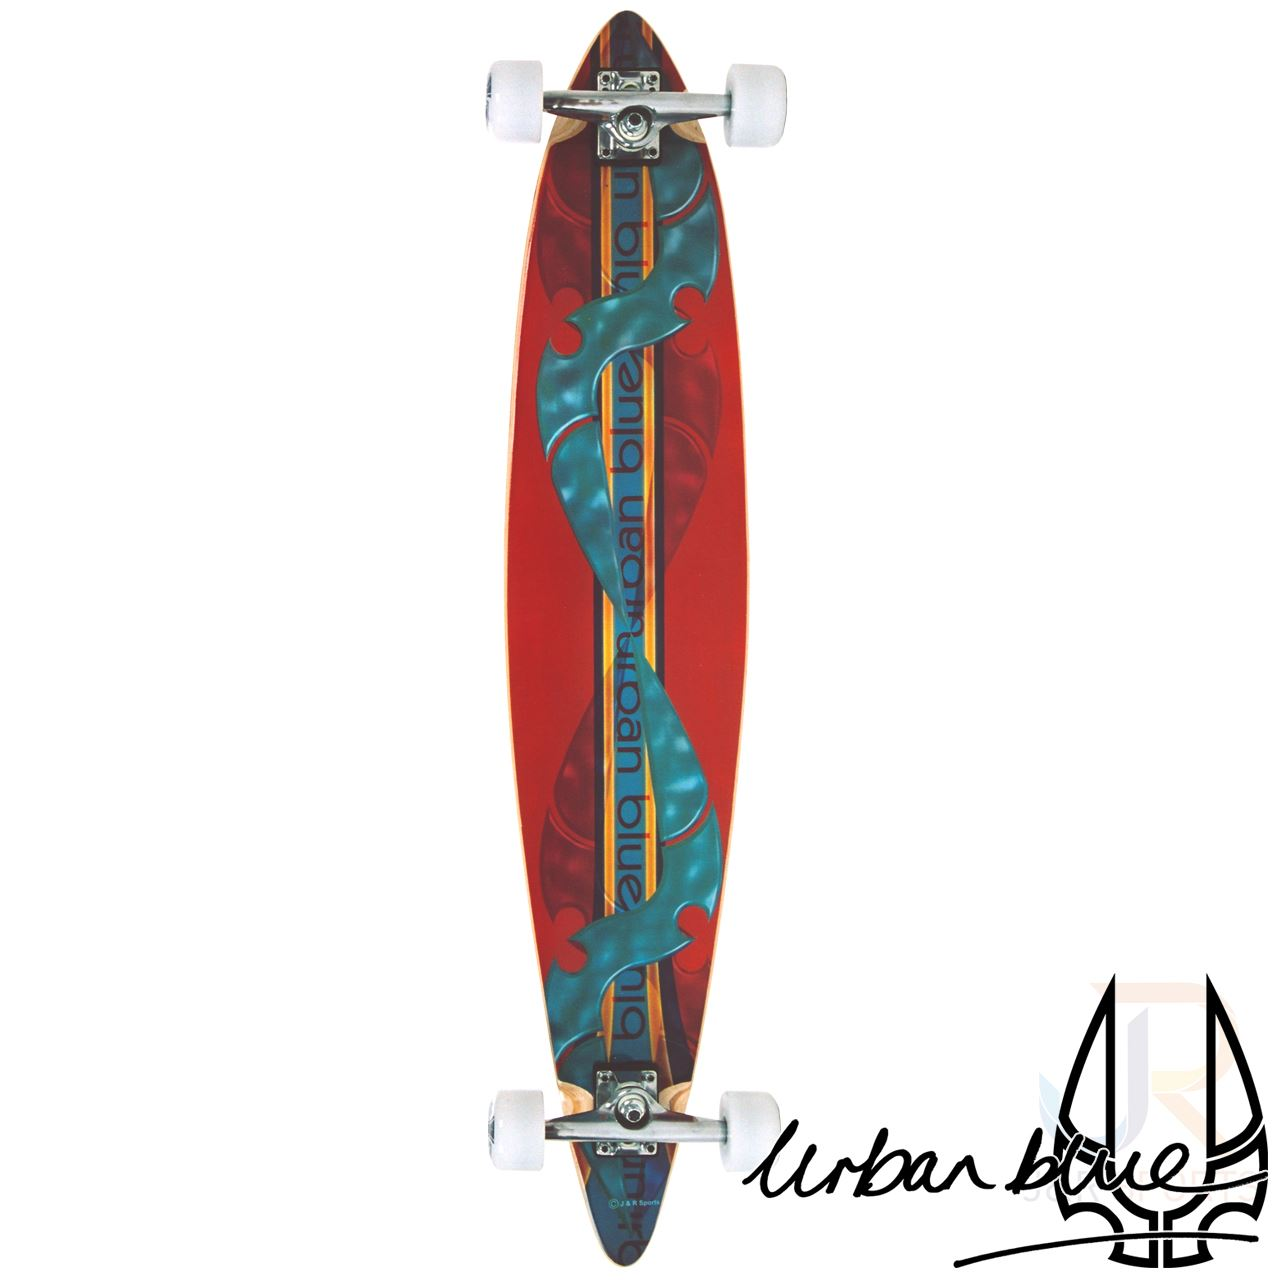 urban blue b6 445quot pintail longboard from urban blue